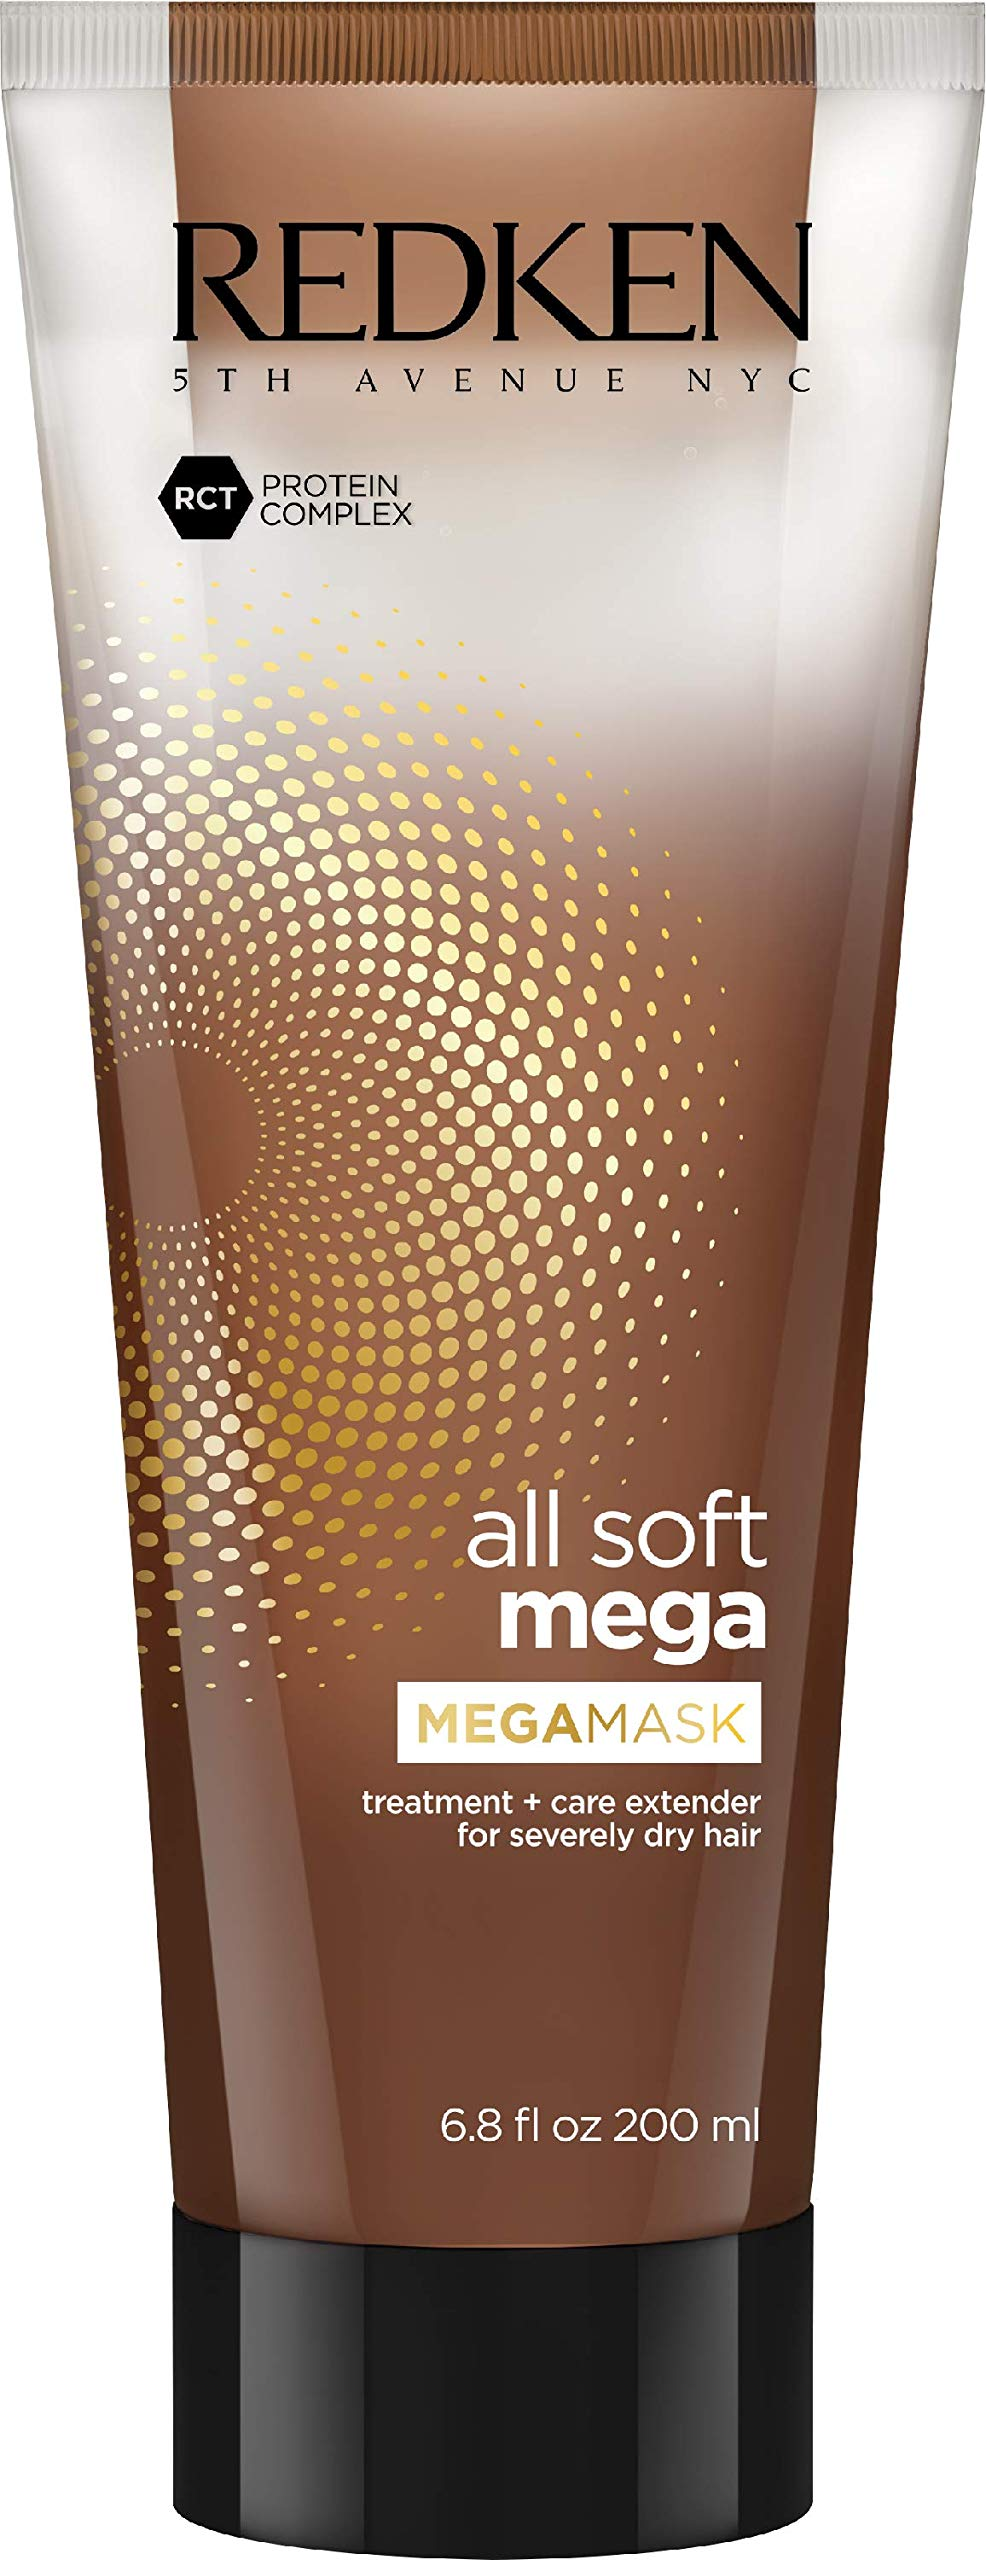 Redken All Soft Mega Mega Mask | For Extremely Dry Hair | Deep Conditioning Hair Treatment Adds Softness & Shine | With Aloe Vera | 6.8 Fl Oz